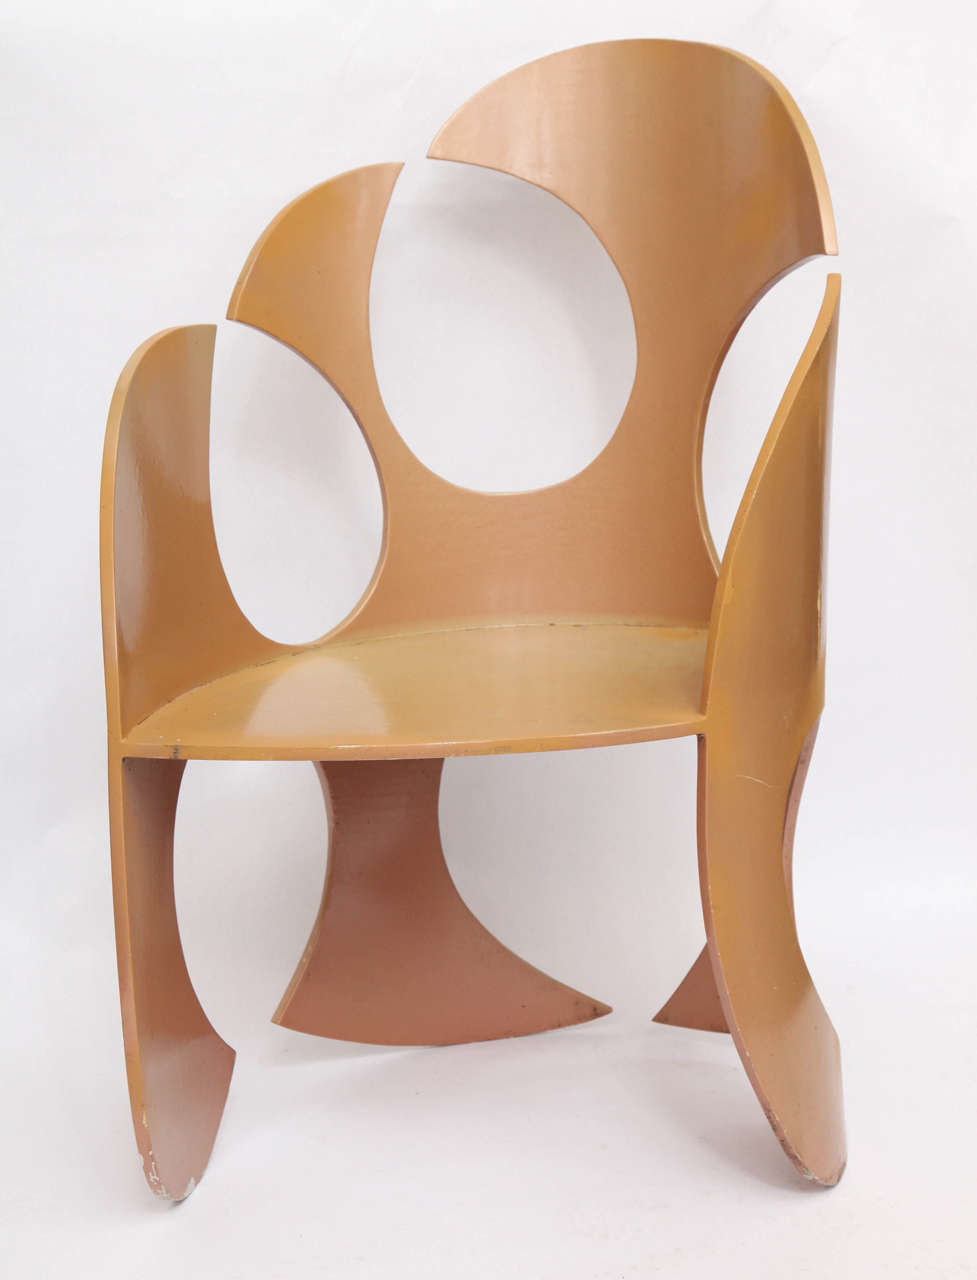 A 1980s sculptural chair crafted of painted metal.